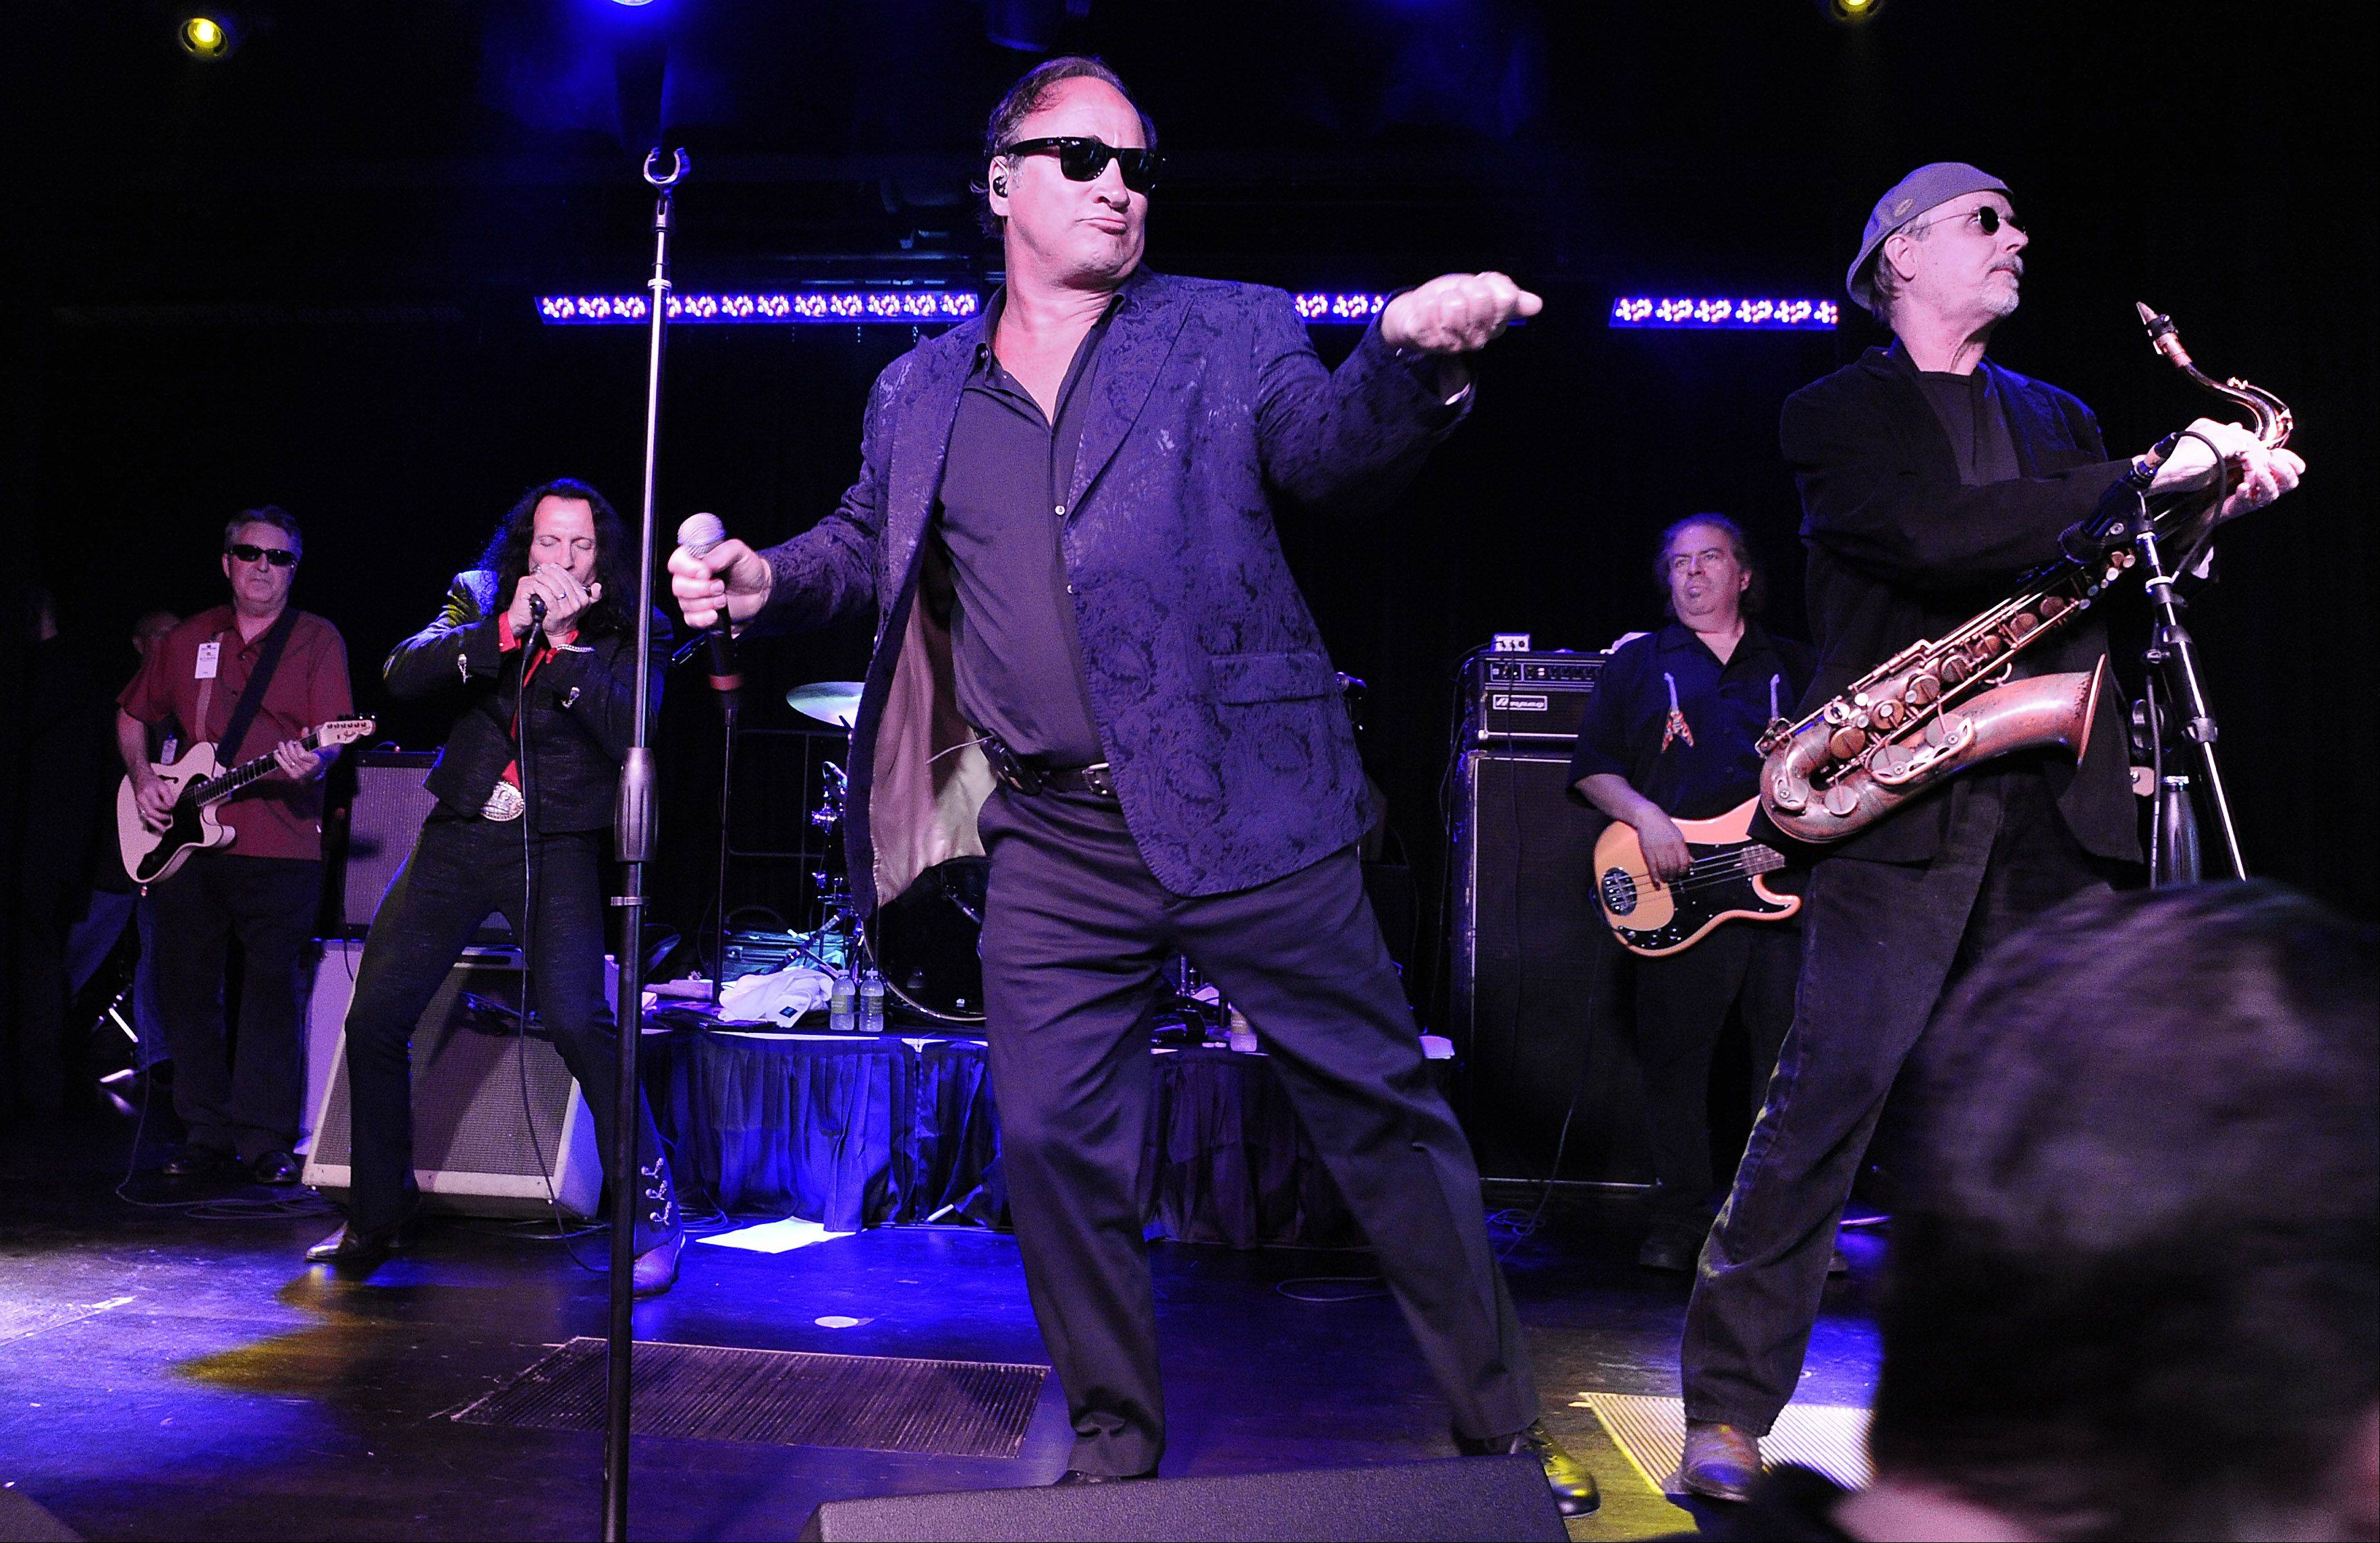 Actor Jim Belushi attends the VIP party at the Rivers Casino in Des Plaines to gamble and sing with his band in the Cube Room on Sunday.